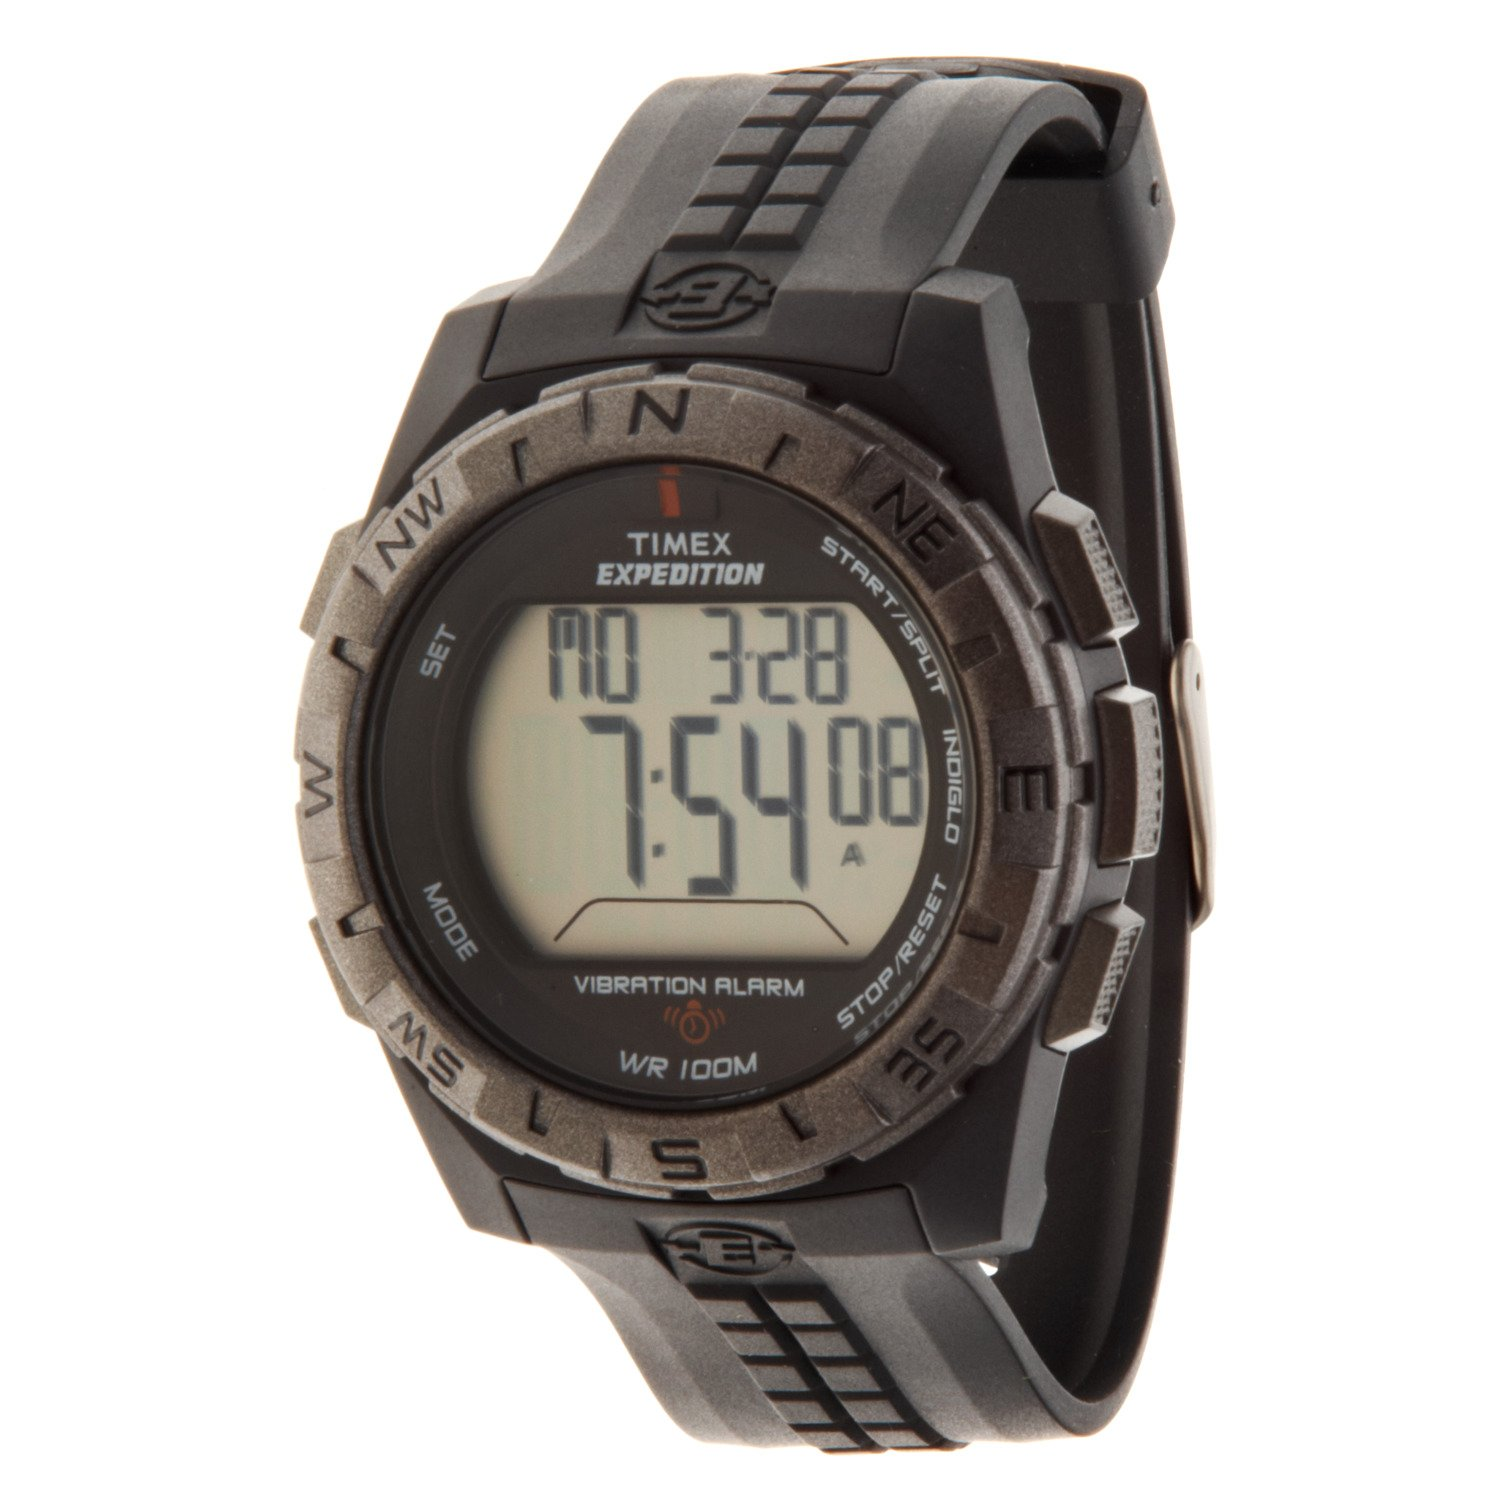 837a08fbcc4f Display product reviews for Timex Men s Vibration Alarm Full-Size Watch